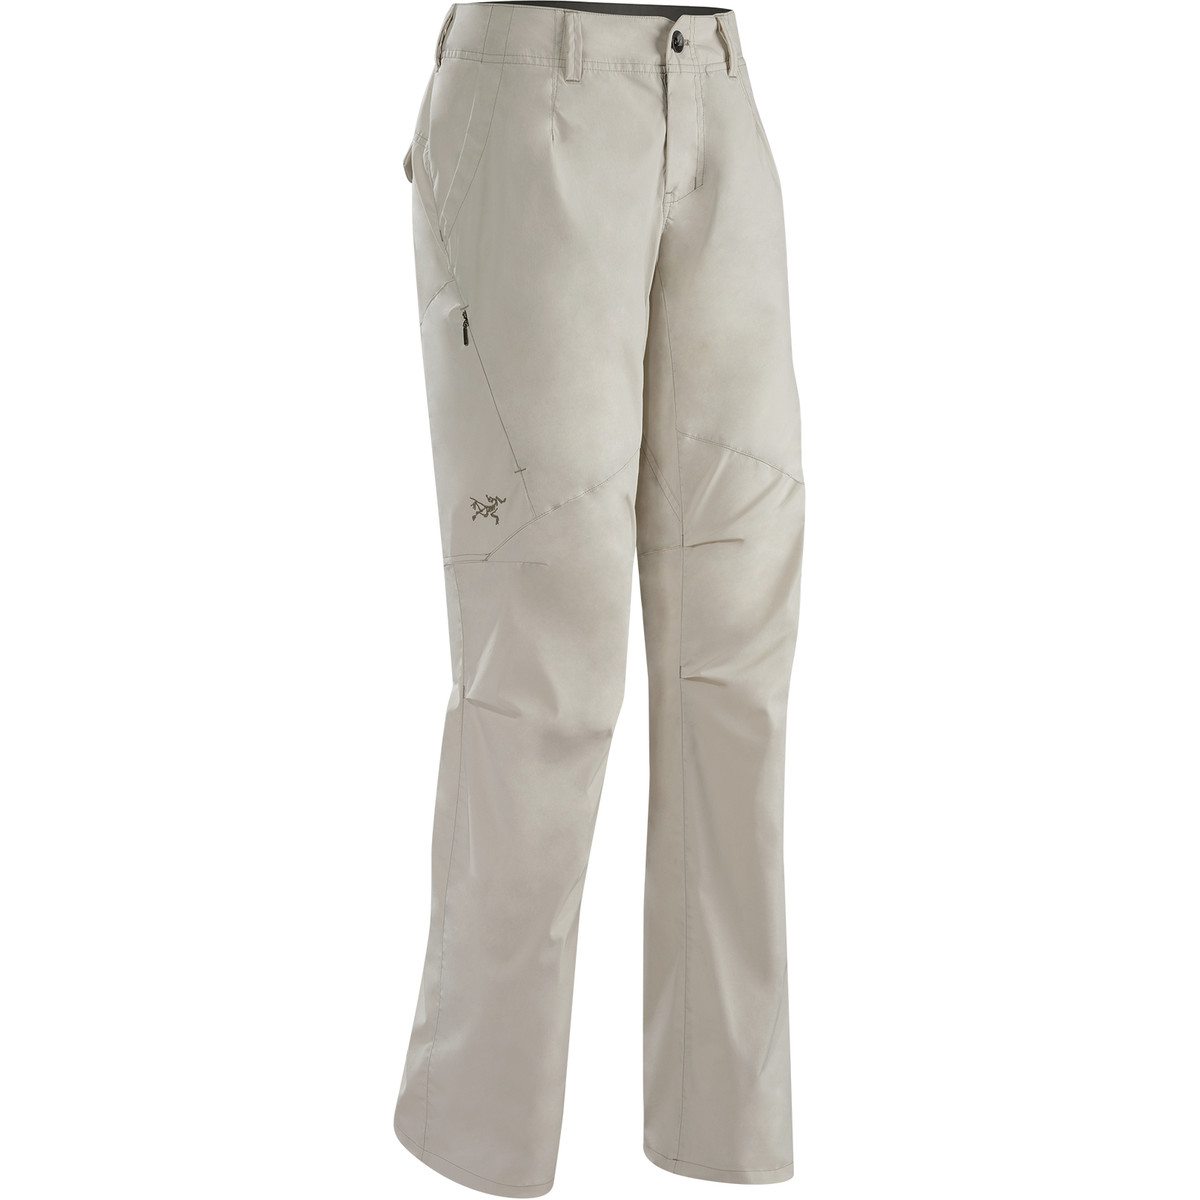 fc7d377027 The Best Hiking Pants for 2019 - Trailspace